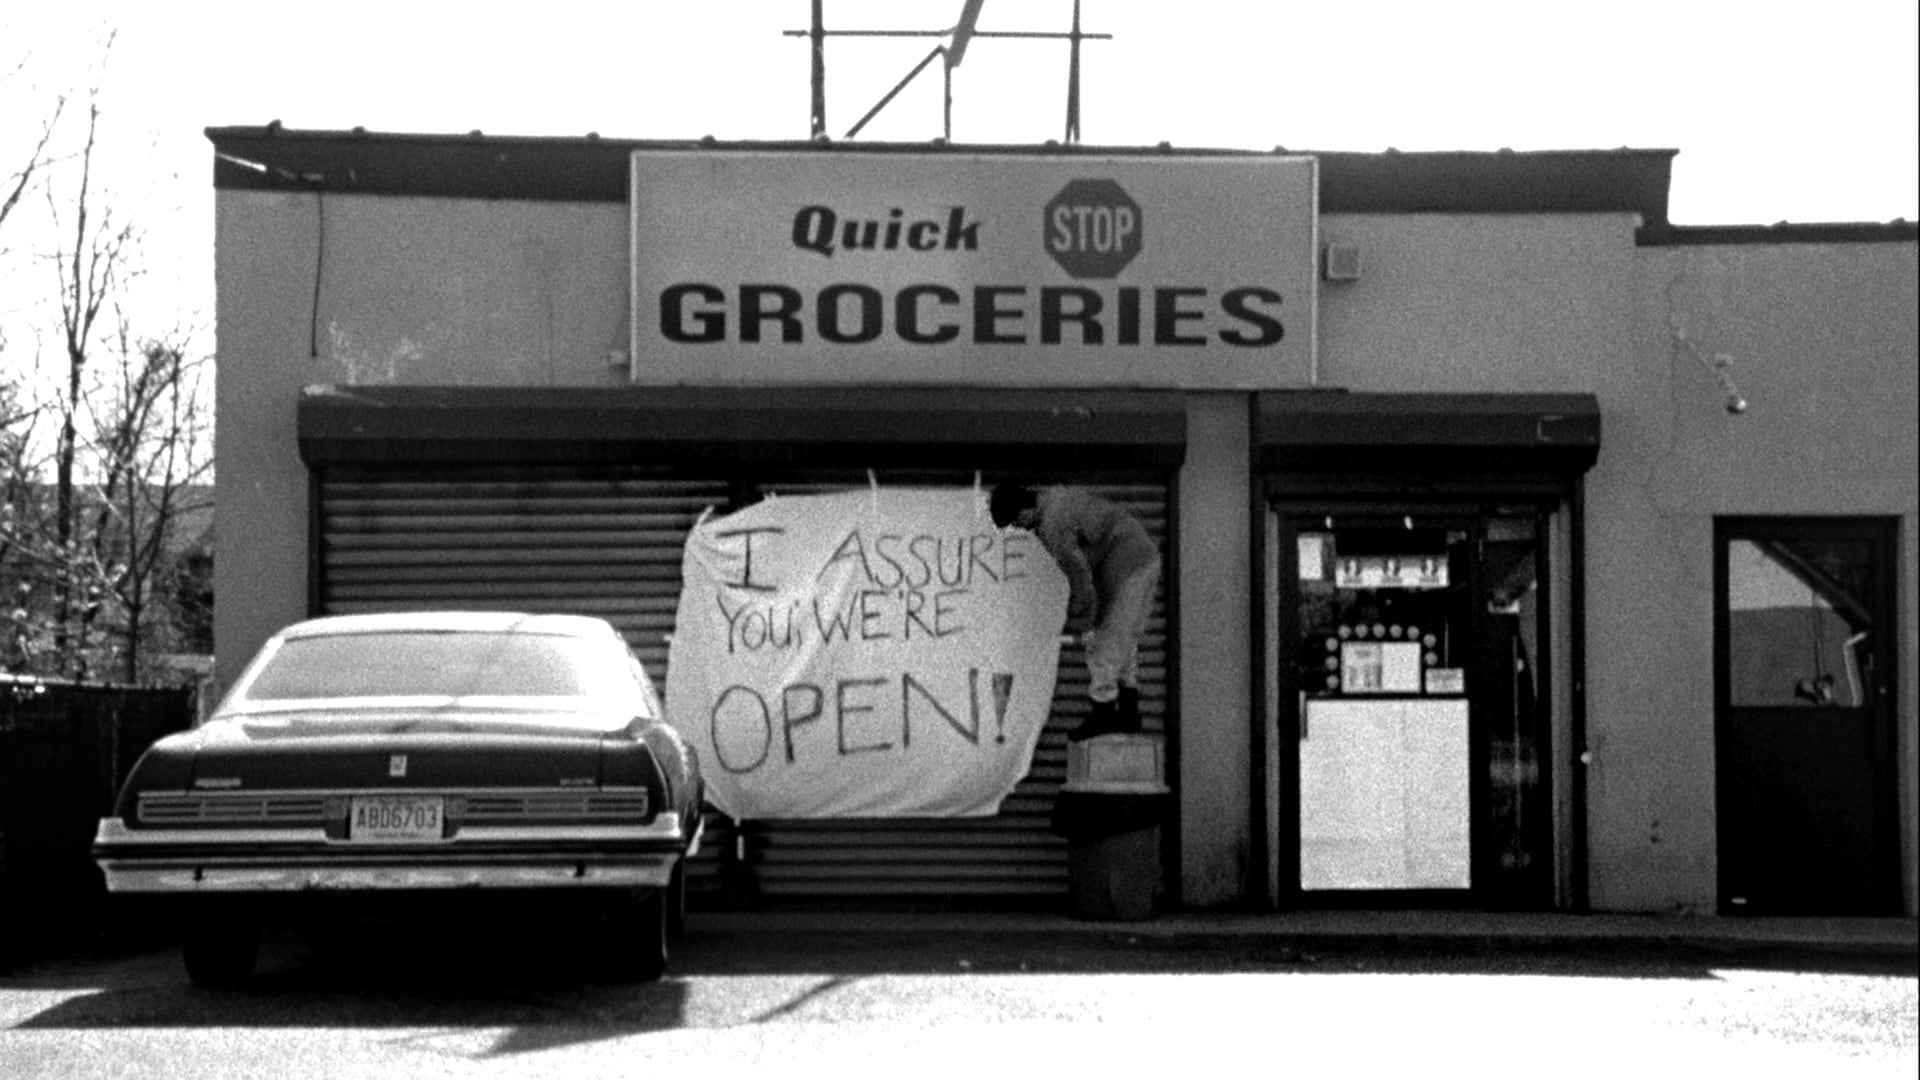 "Still from the movie ""Clerks"". A convenience store has the shutters closed. A handwritten sign says ""I assure you we're open!"""